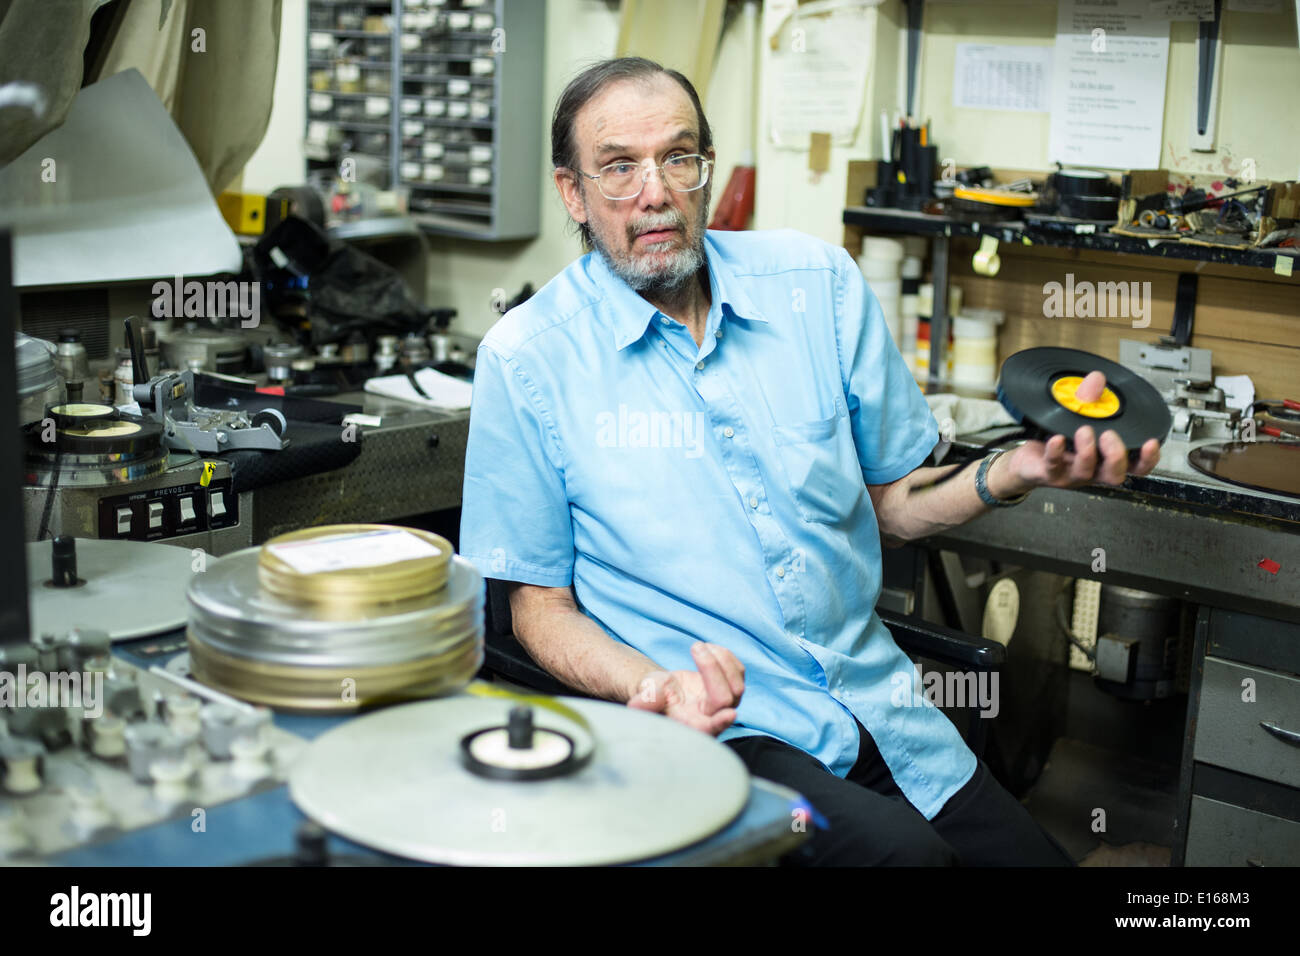 Tony Scott at the Steenbeck editing machine in his film lab - Stock Image